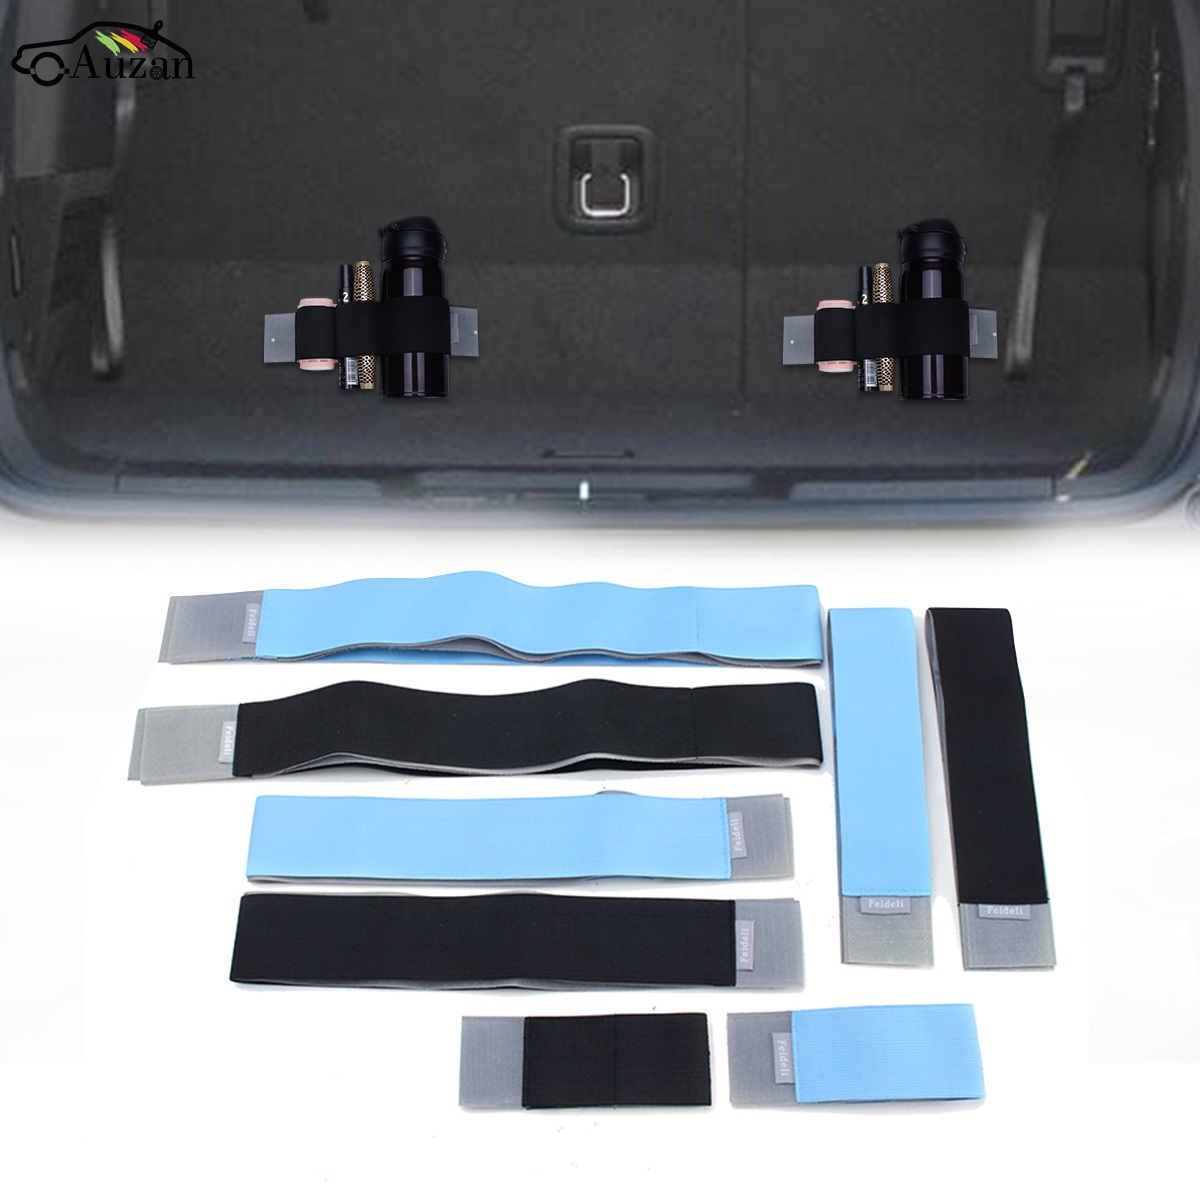 Universal Car Rear Trunk Organizer Elastic Color Strap Sticker Fixed Stowing Tidying Interior For VW/ Audi/BMW/Mazda/Peugeot